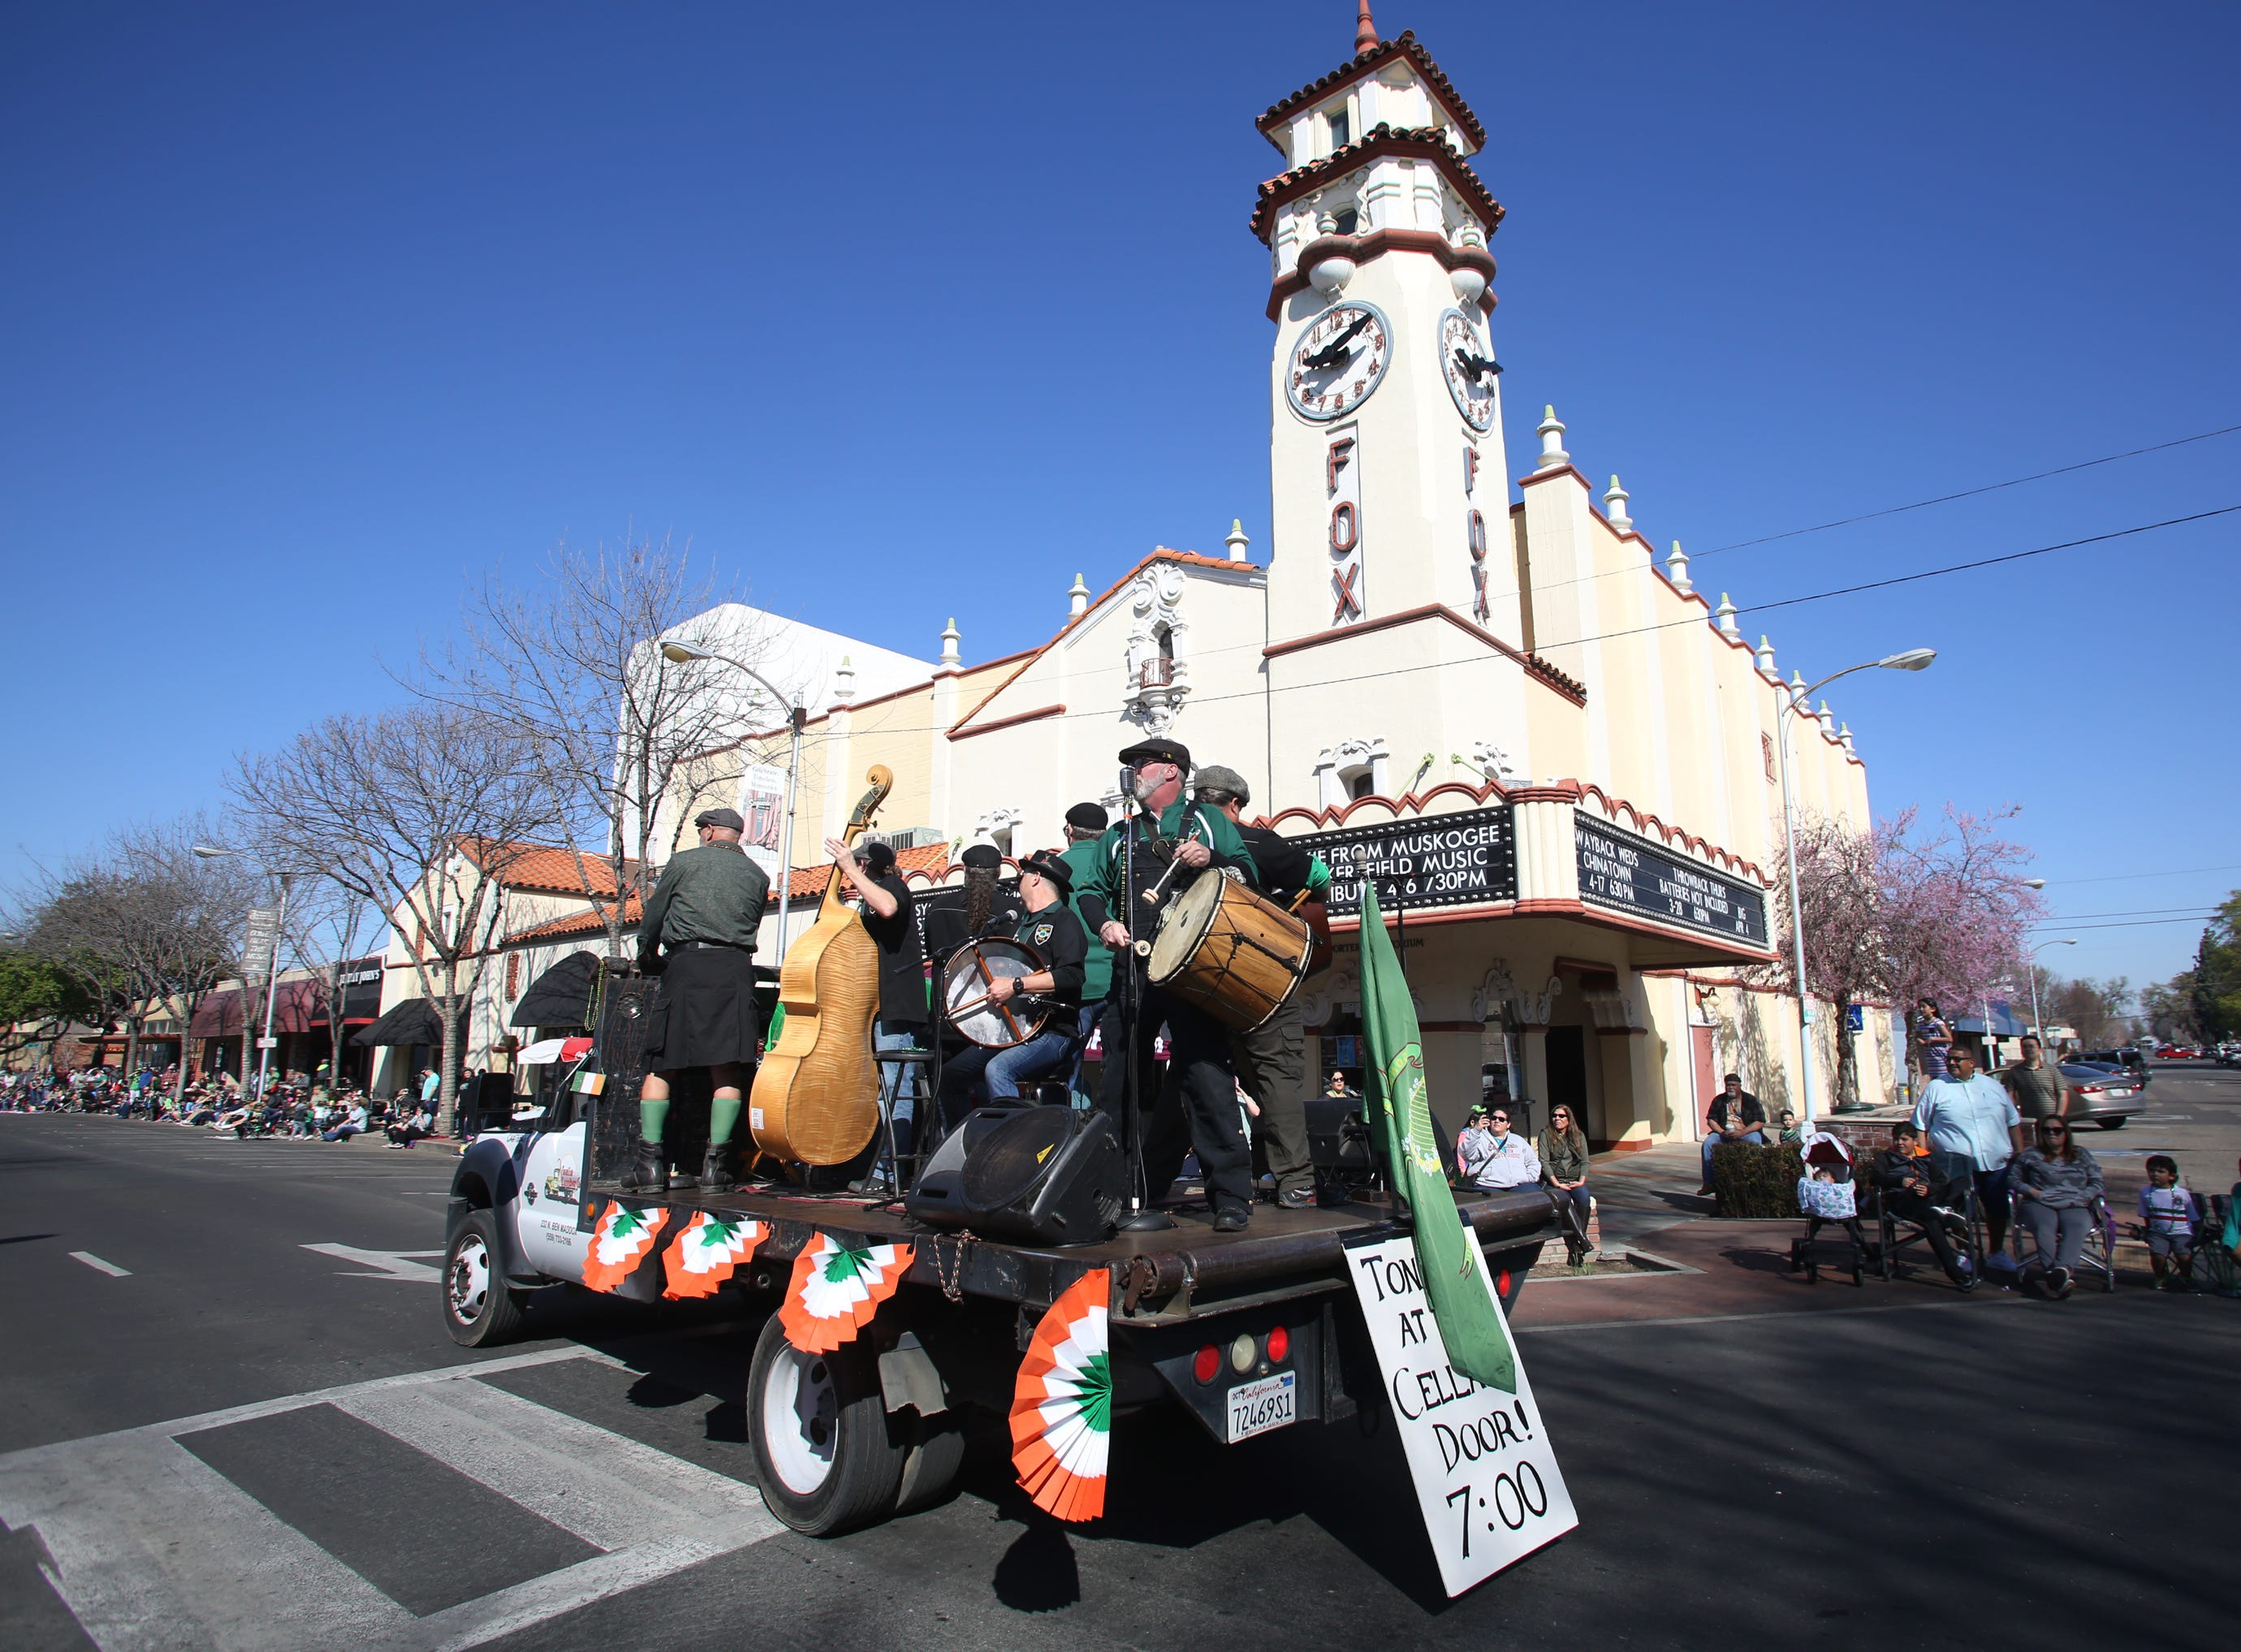 The band Heinrich Patriots performs at this year's St. Patrick's Day parade rolling through Main Street Saturday, March 16, 2019 in Visalia, Calif.